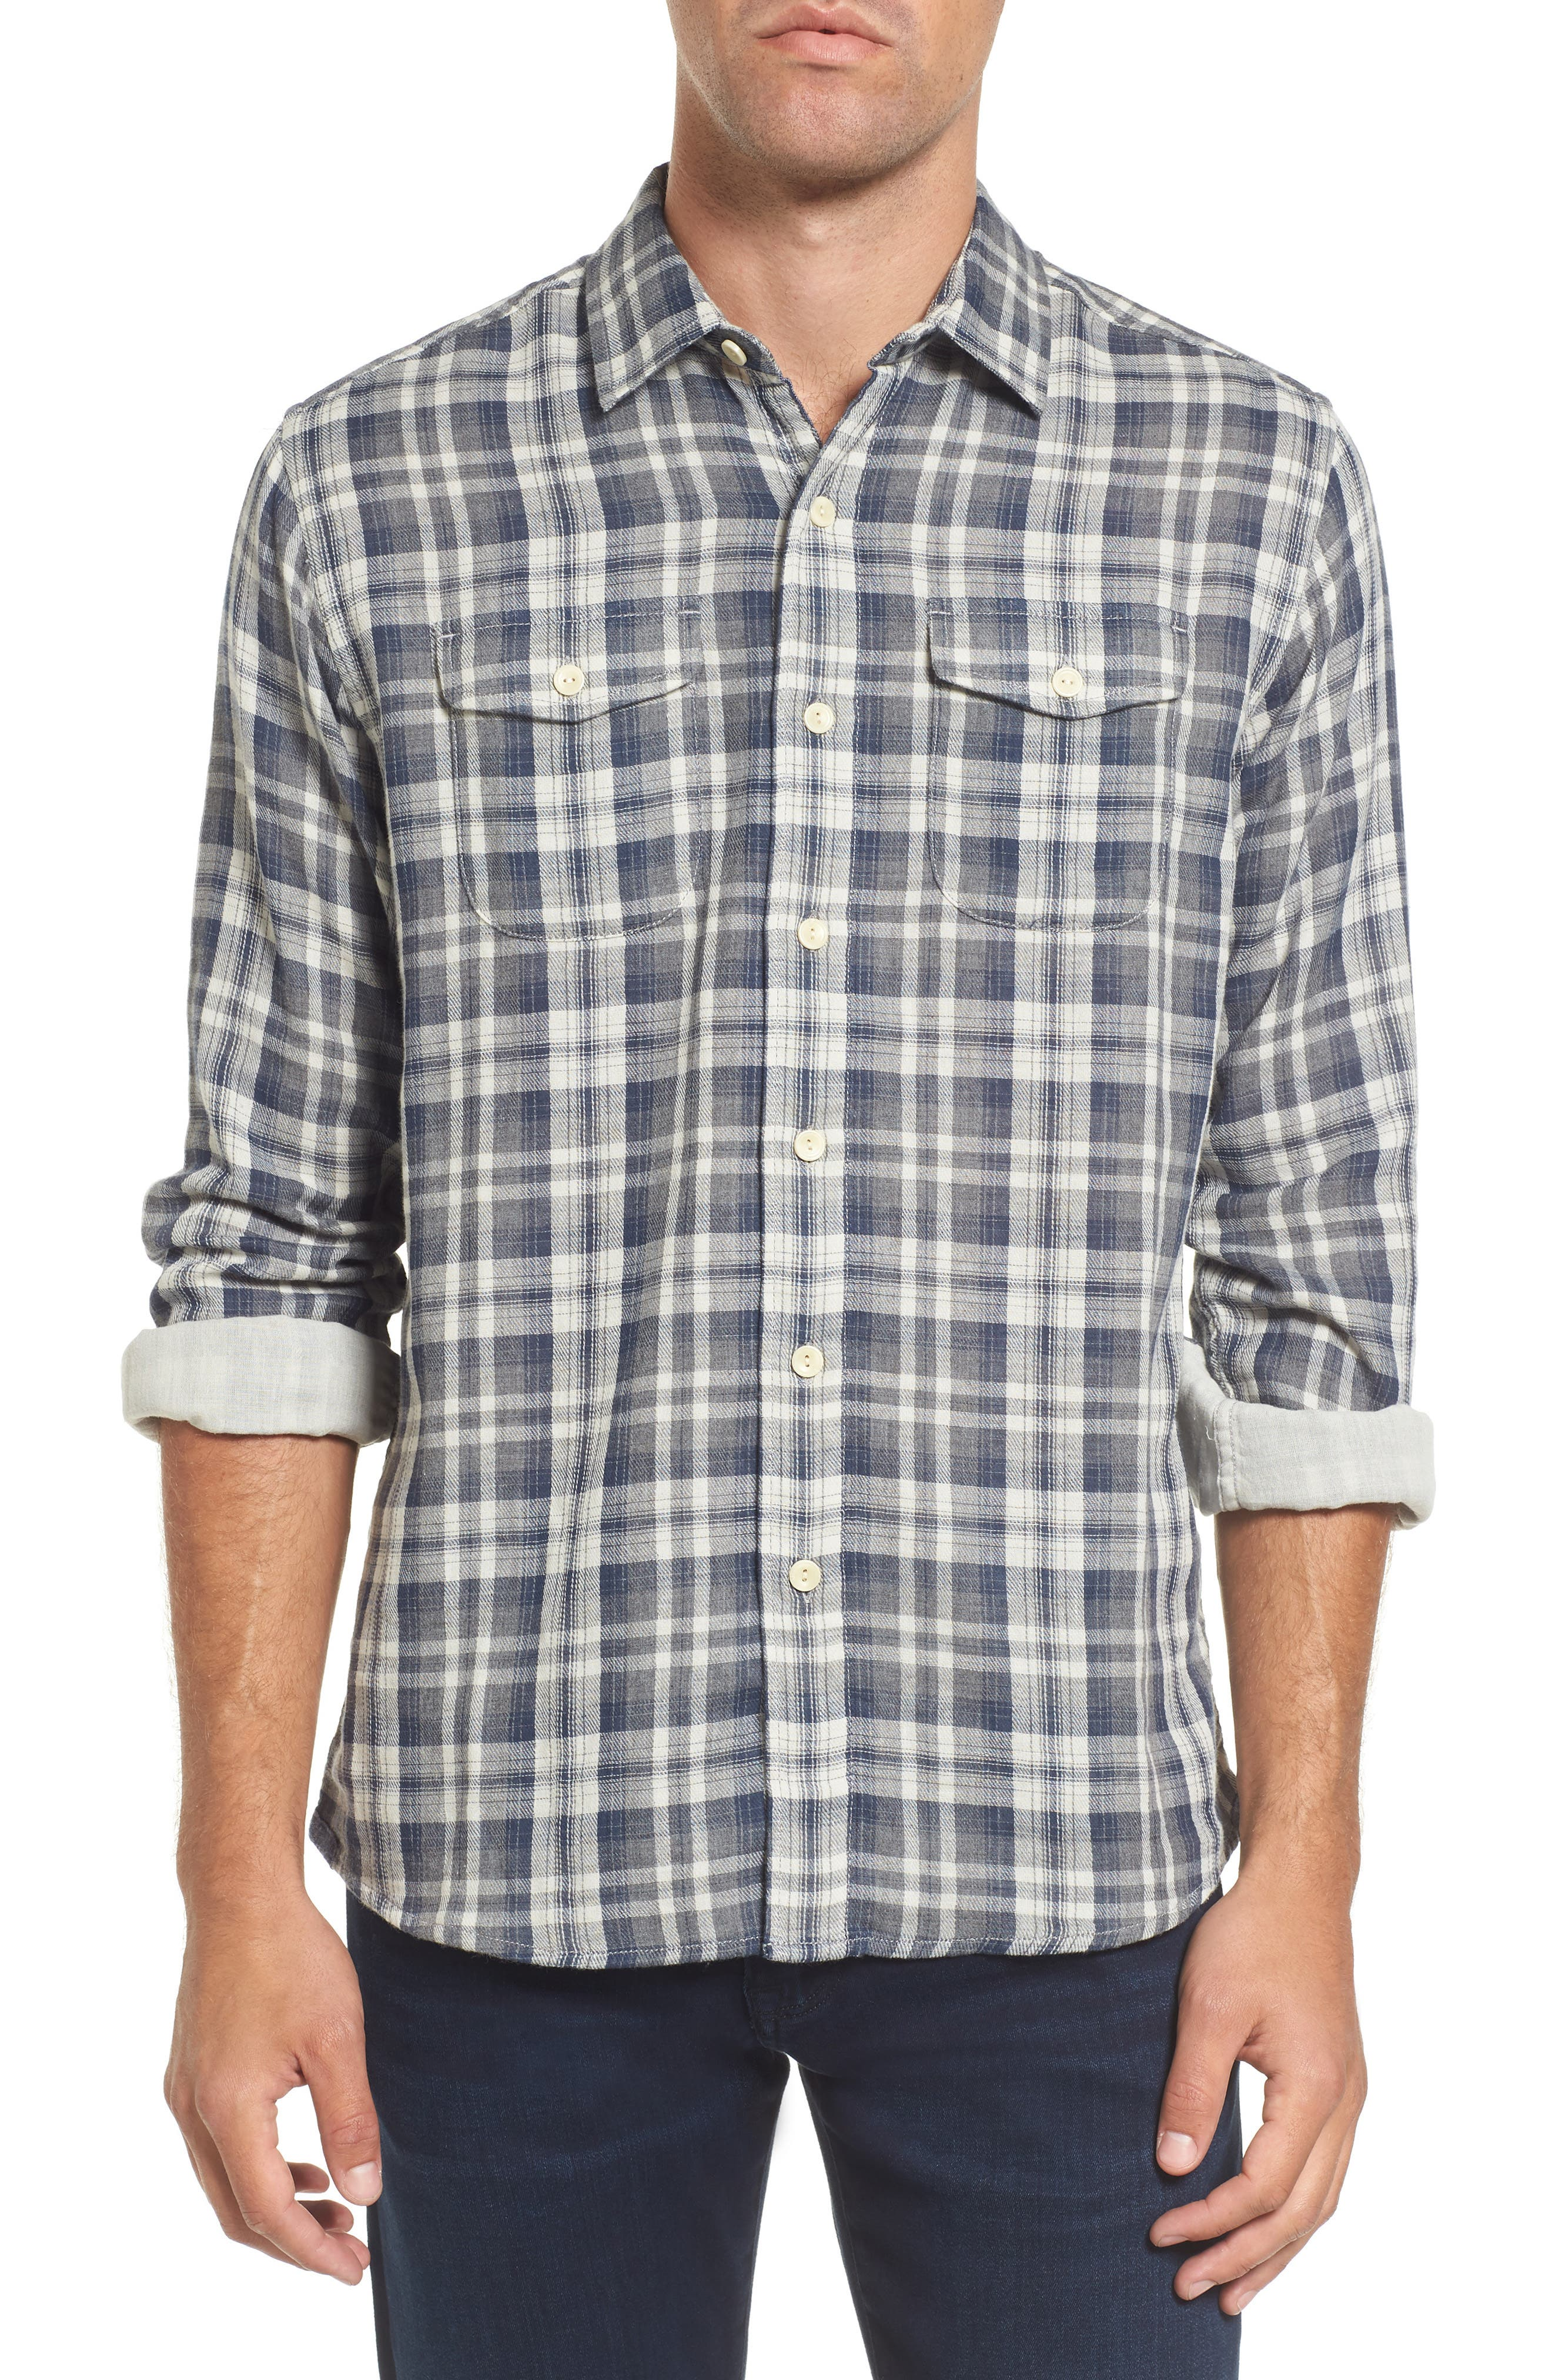 Saratoga Modern Fit Plaid Double Cloth Sport Shirt,                         Main,                         color, Charcoal Navy Stone